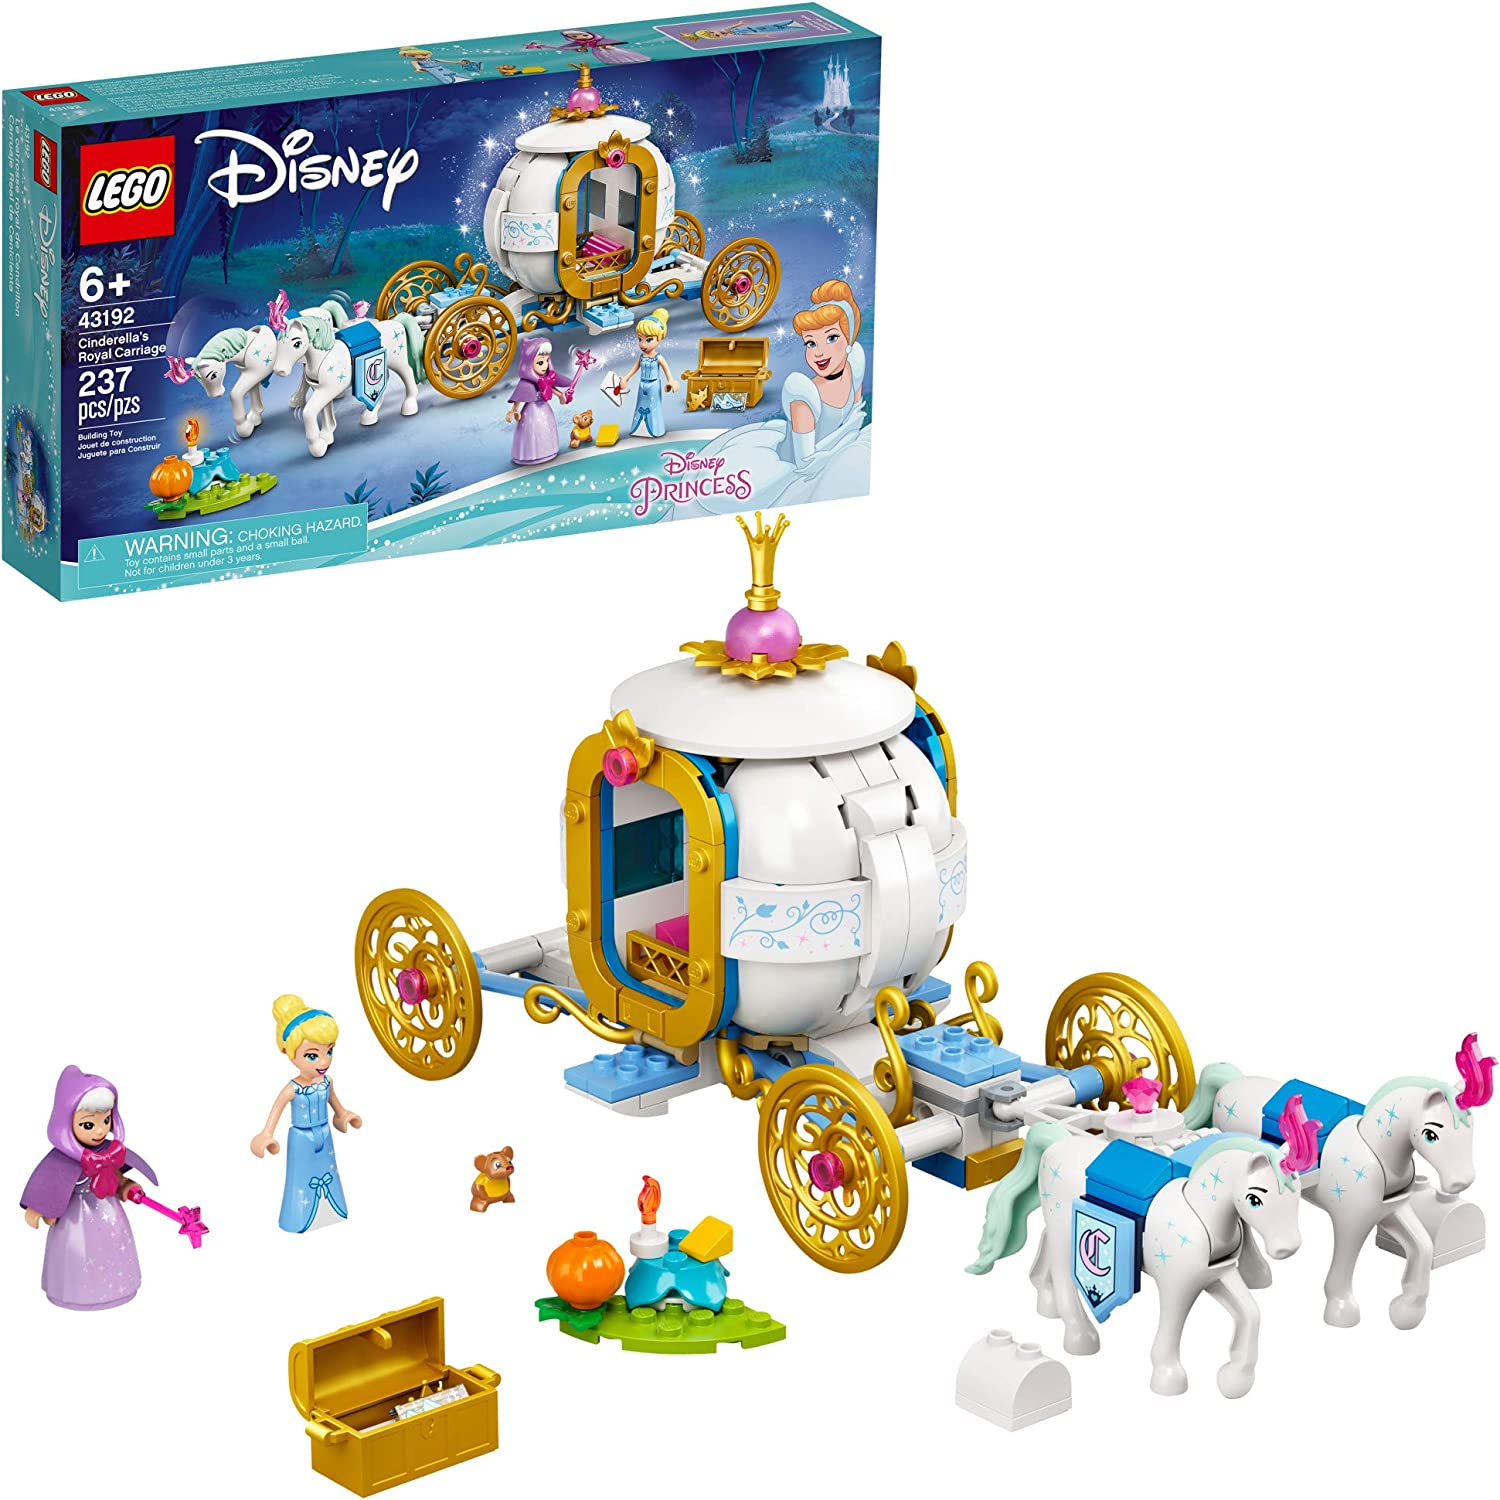 LEGO Disney Cinderella's Royal Carriage 43192; Creative Building Kit That Makes a Great Gift, New 2021 (237 Pieces)